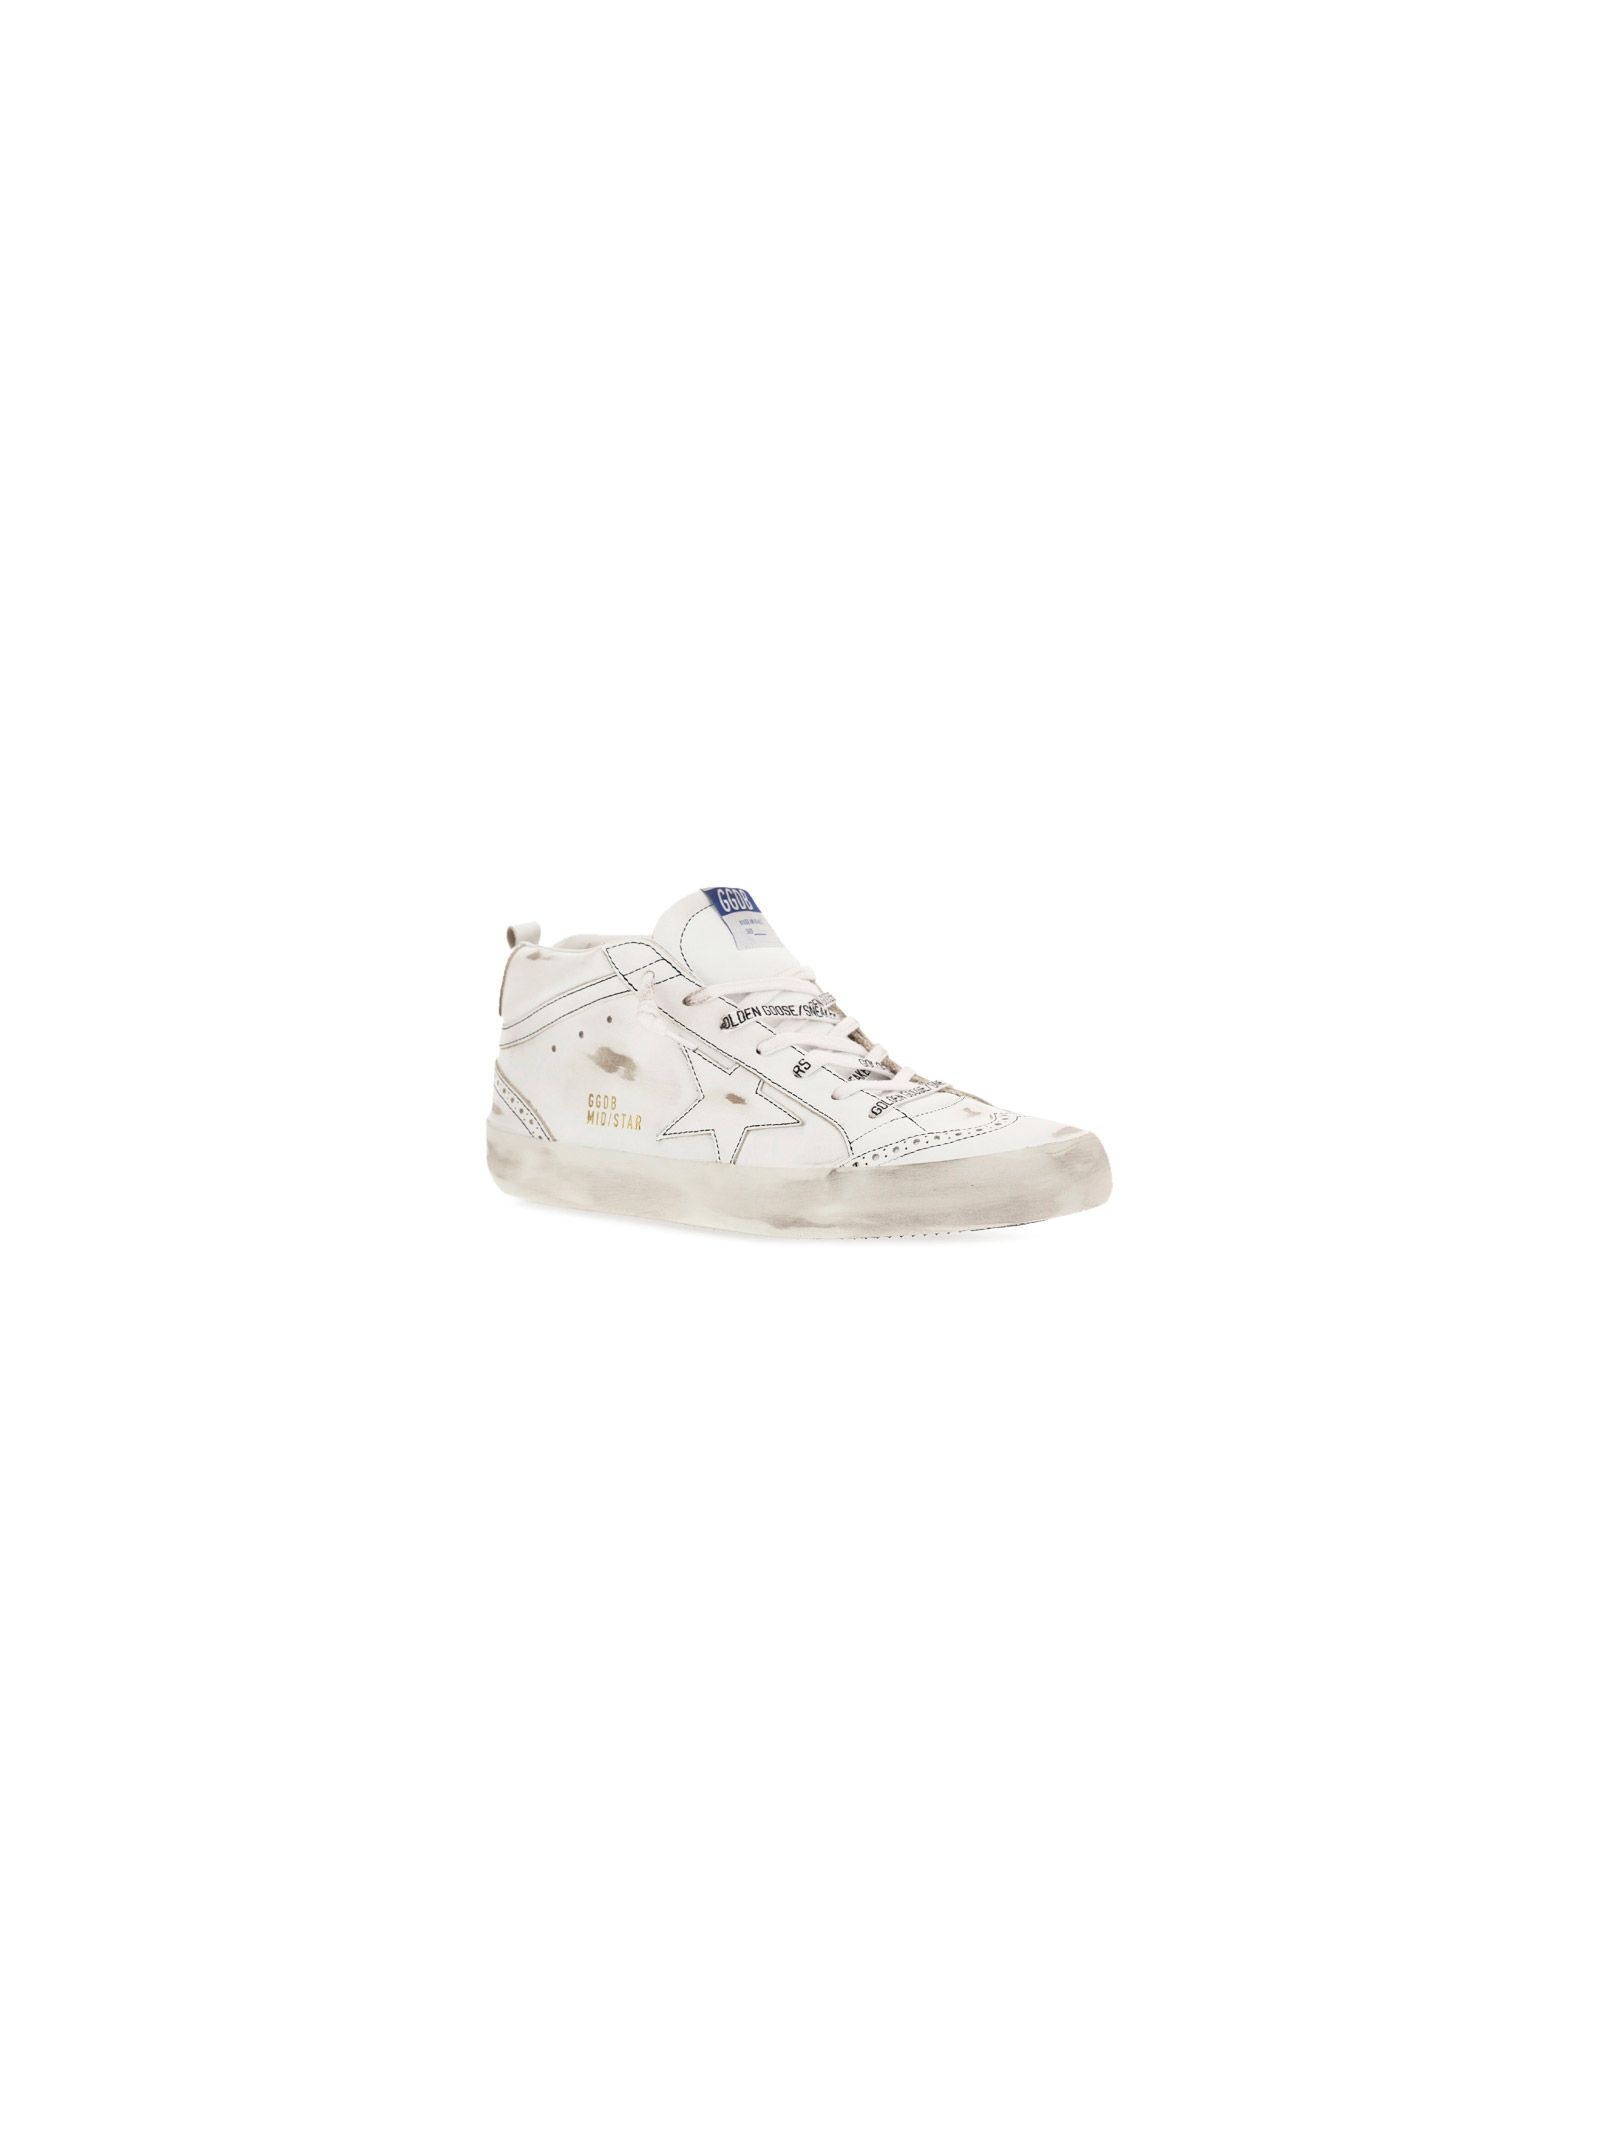 GOLDEN GOOSE Leathers GOLDEN GOOSE MEN'S WHITE OTHER MATERIALS SNEAKERS